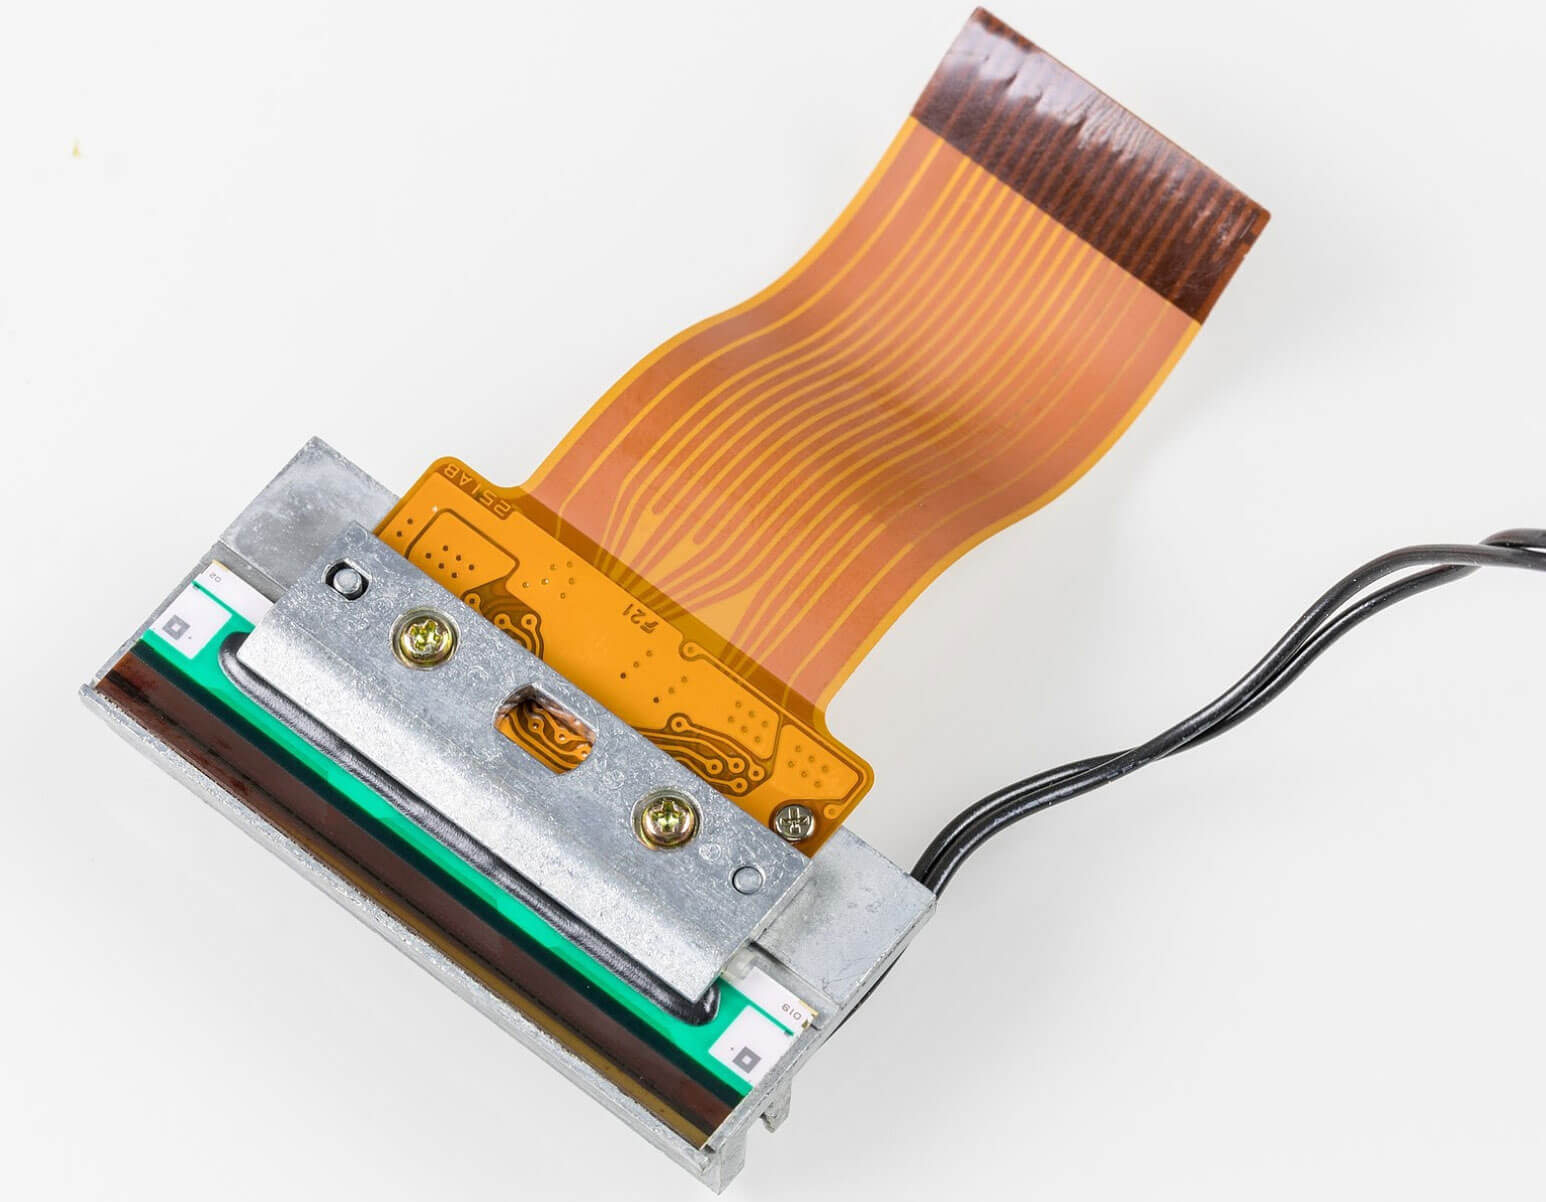 Typical thermal array printhead